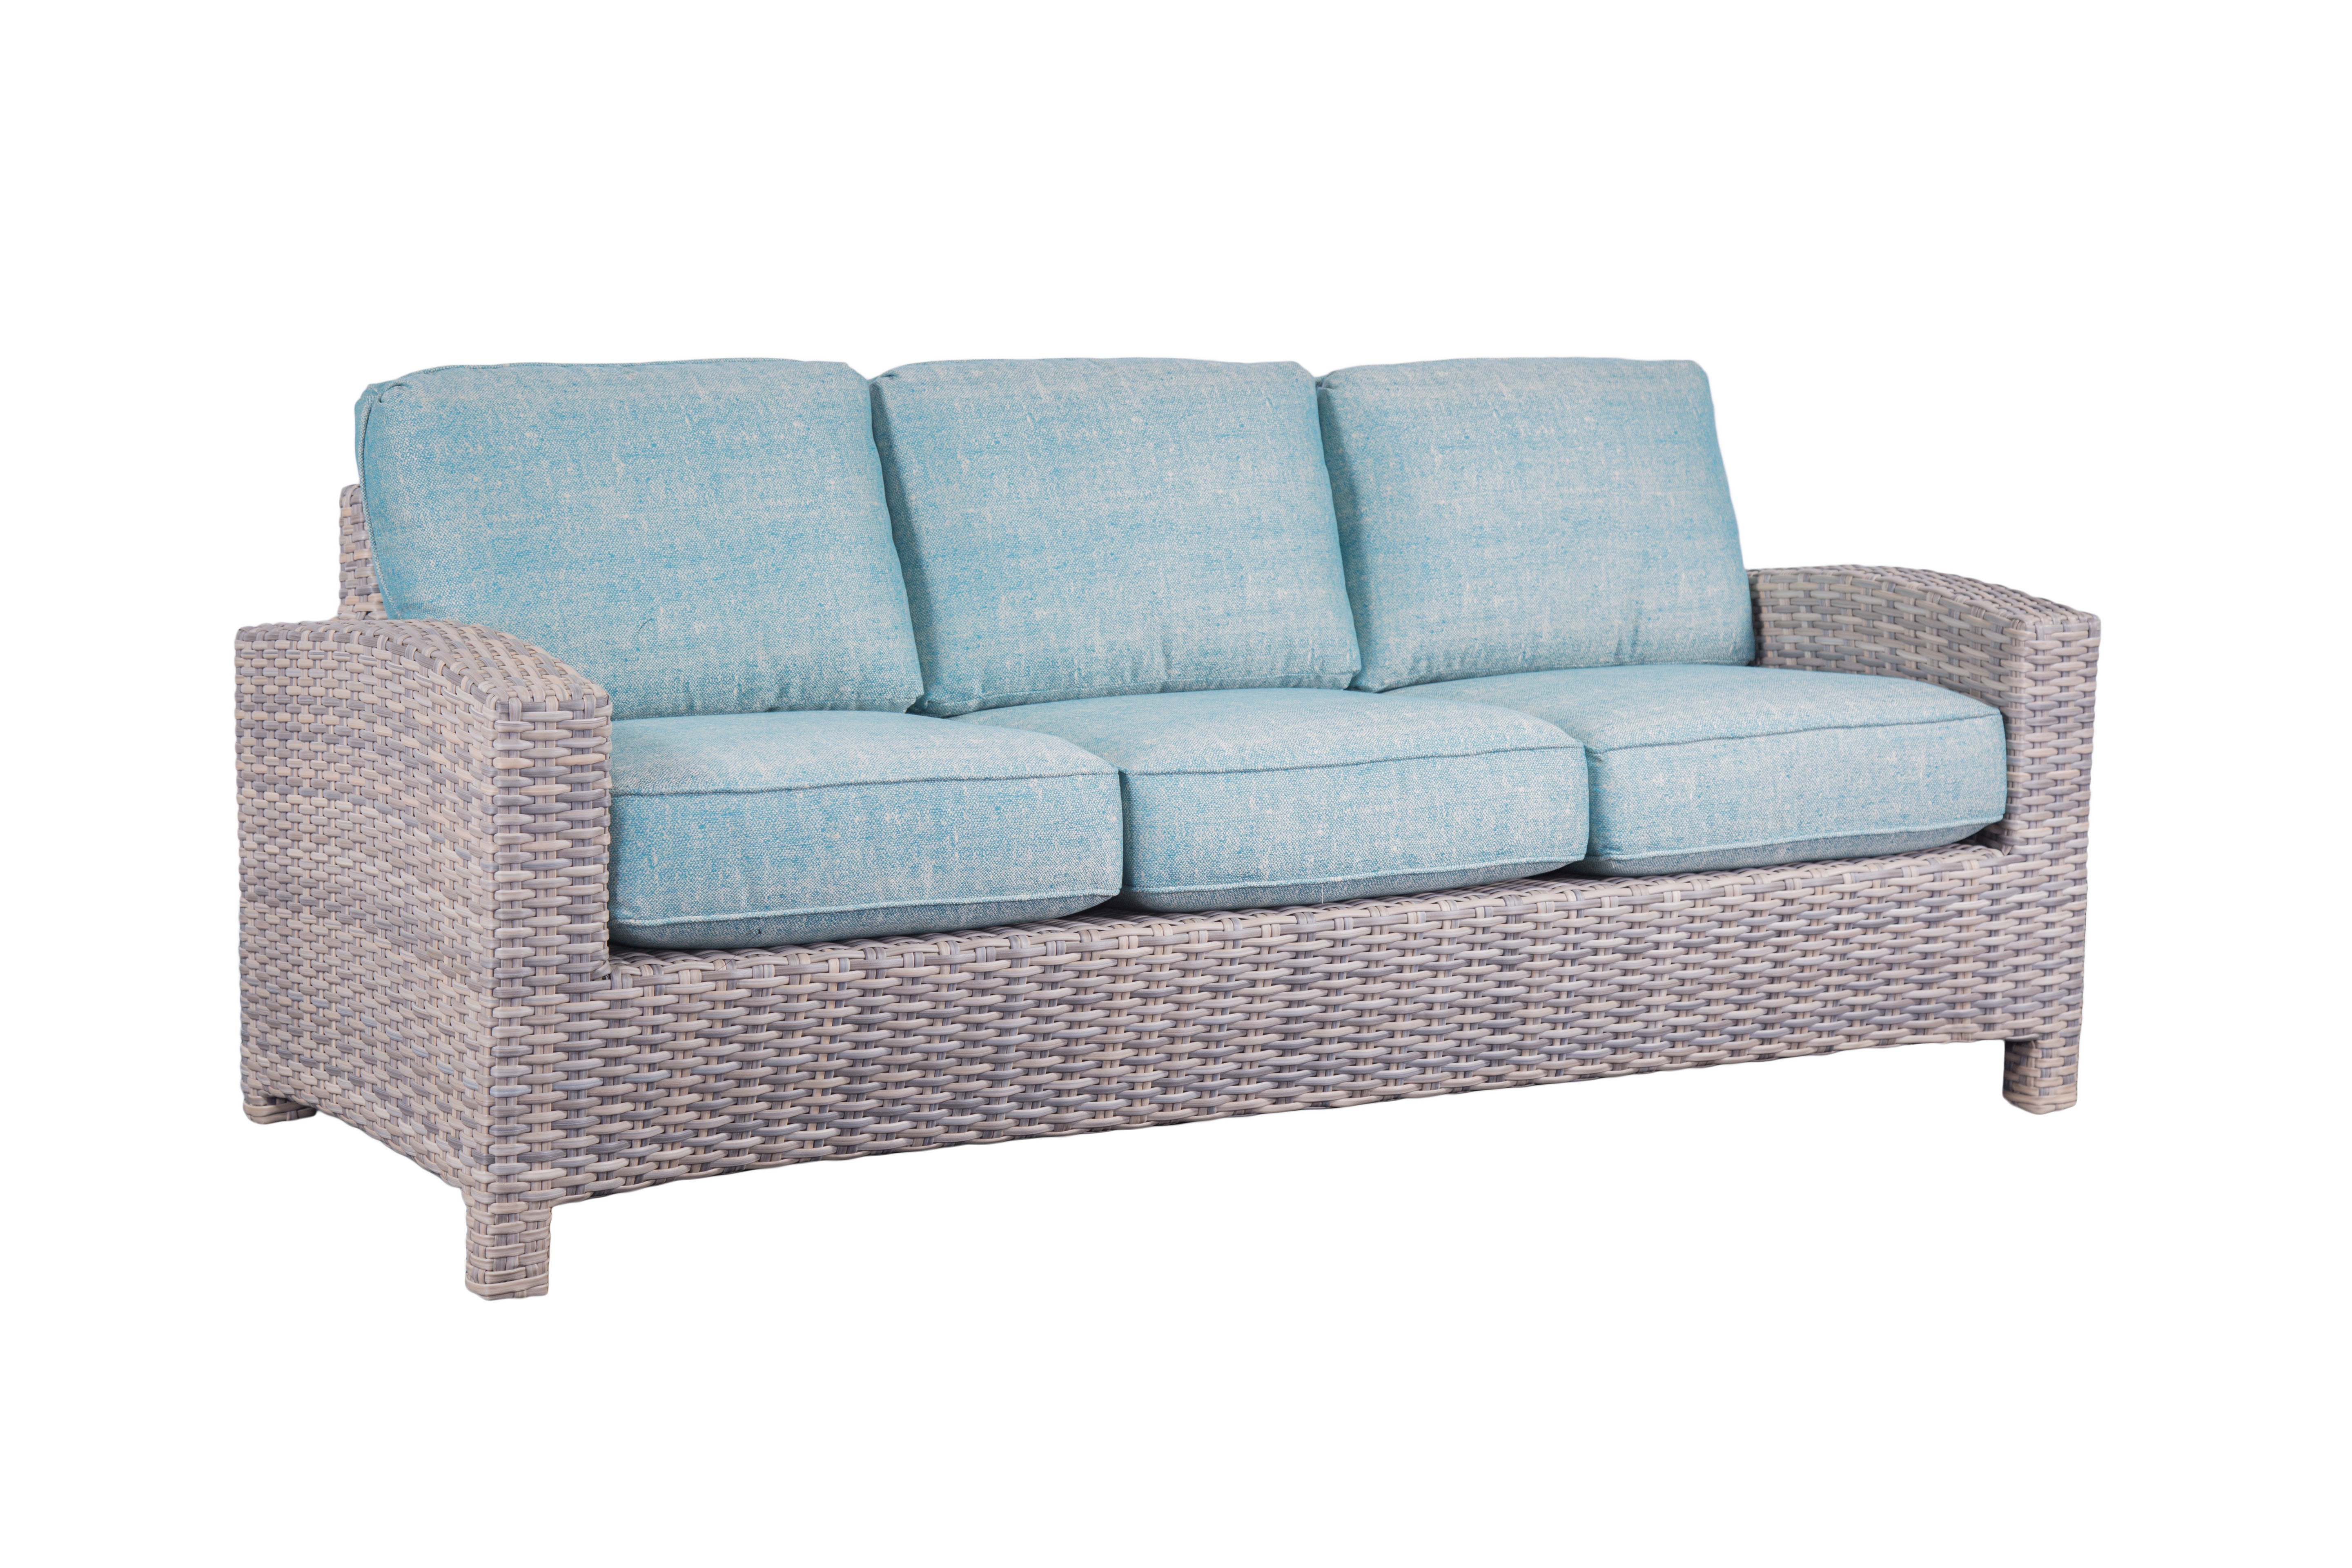 Outdoor wicker sofas sectionals redbarn furniture for Beach craft rattan furniture